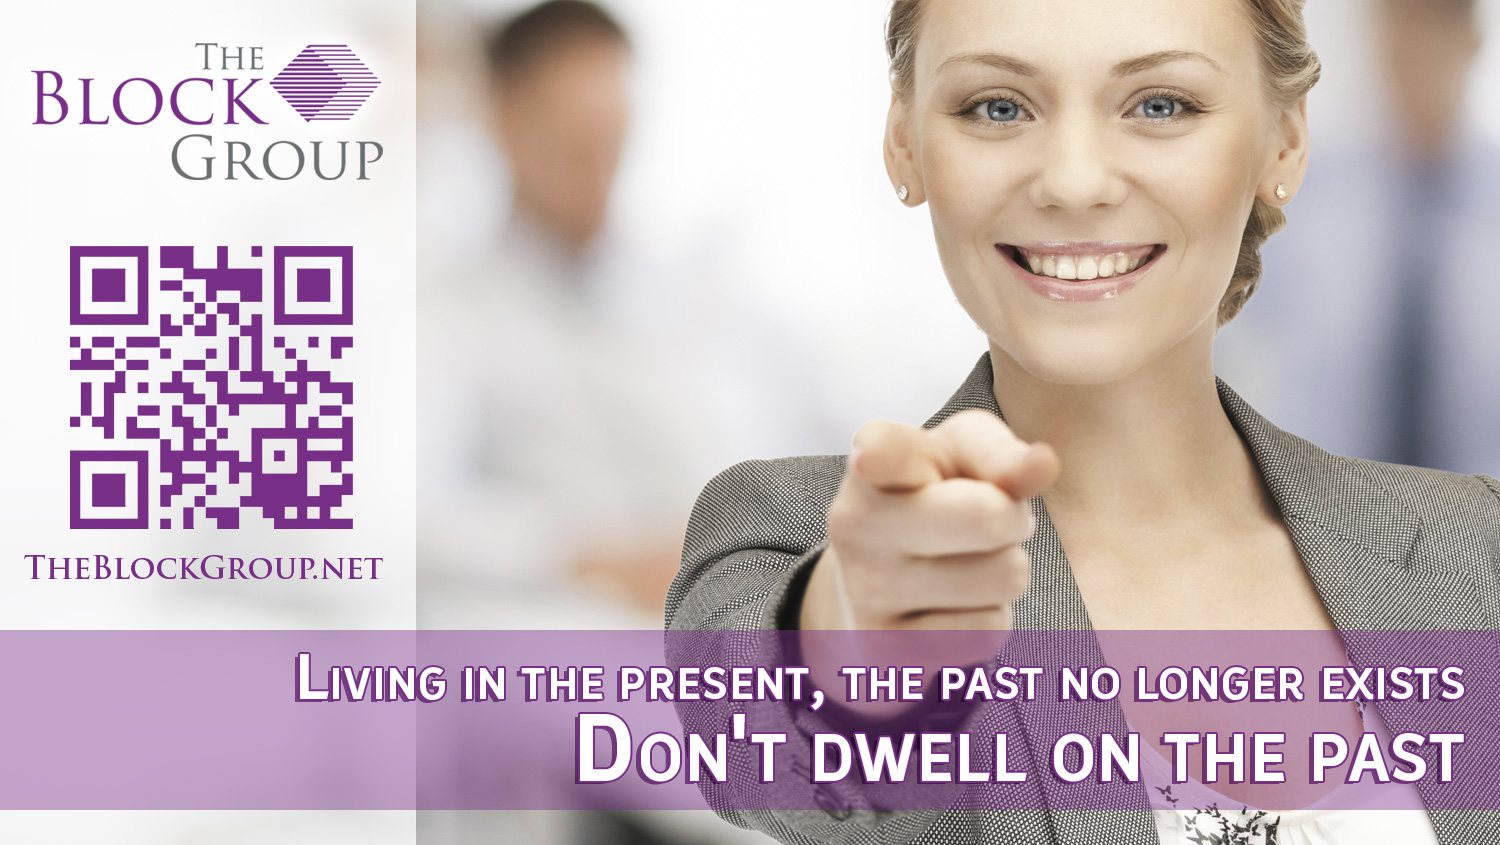 009-Dont-dwell-on-the-past